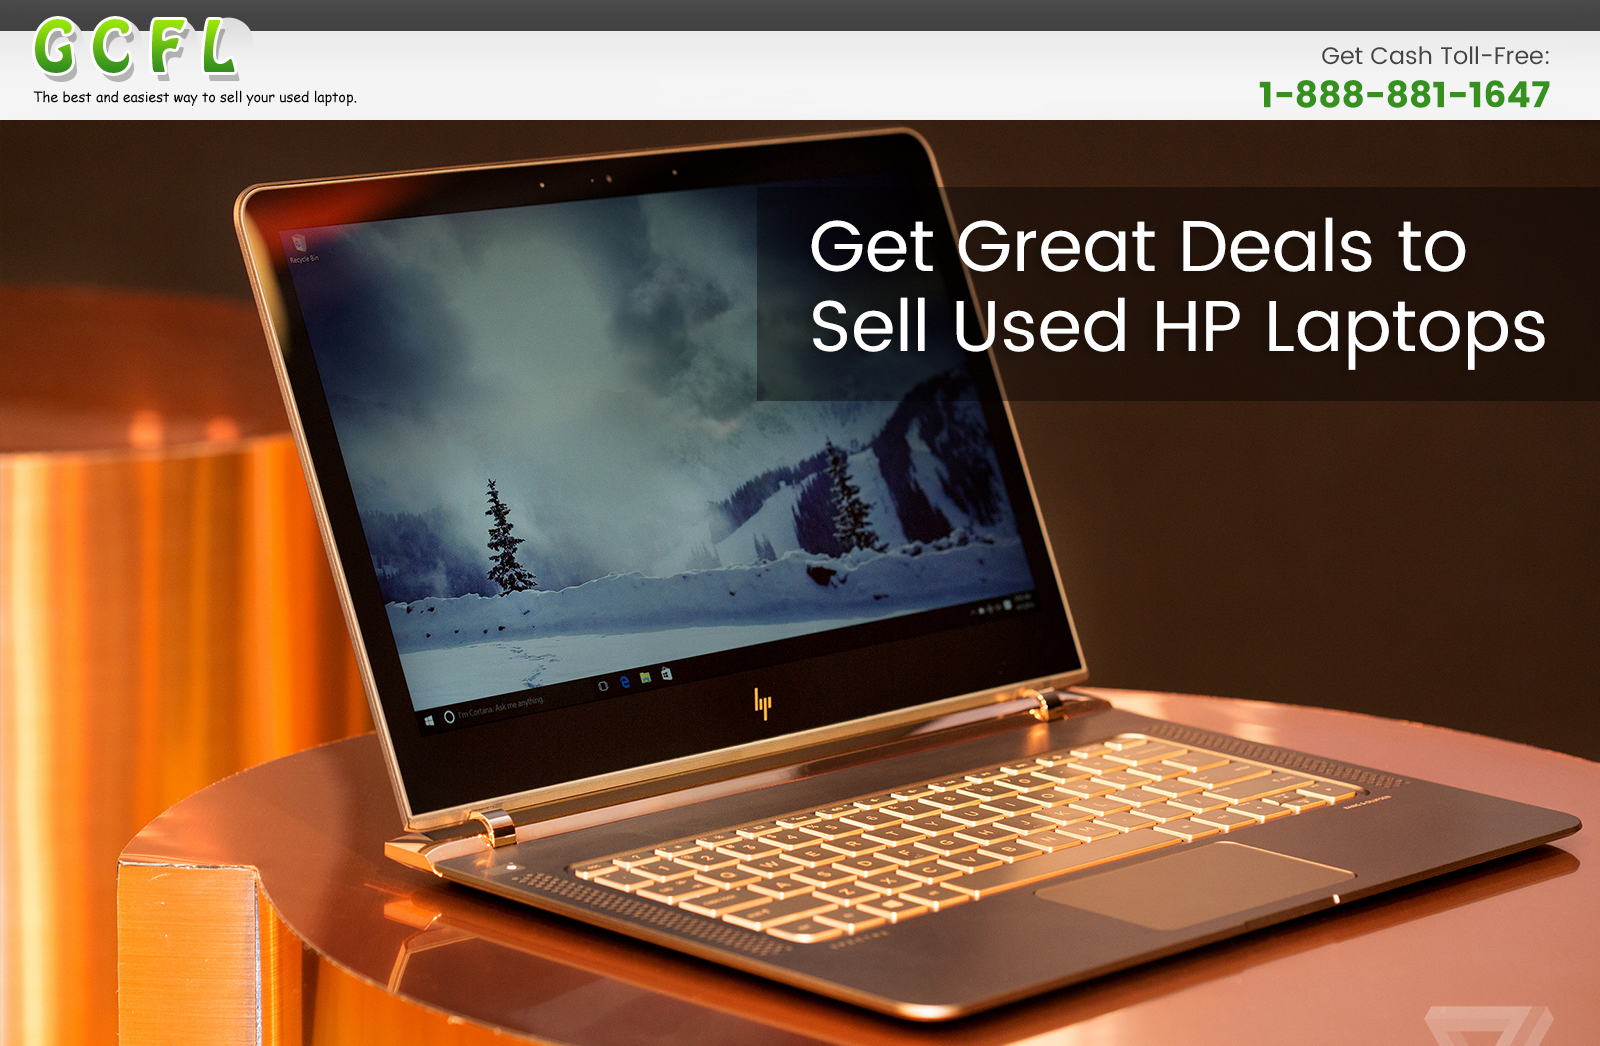 Get Great Deals to Sell Used HP Laptops